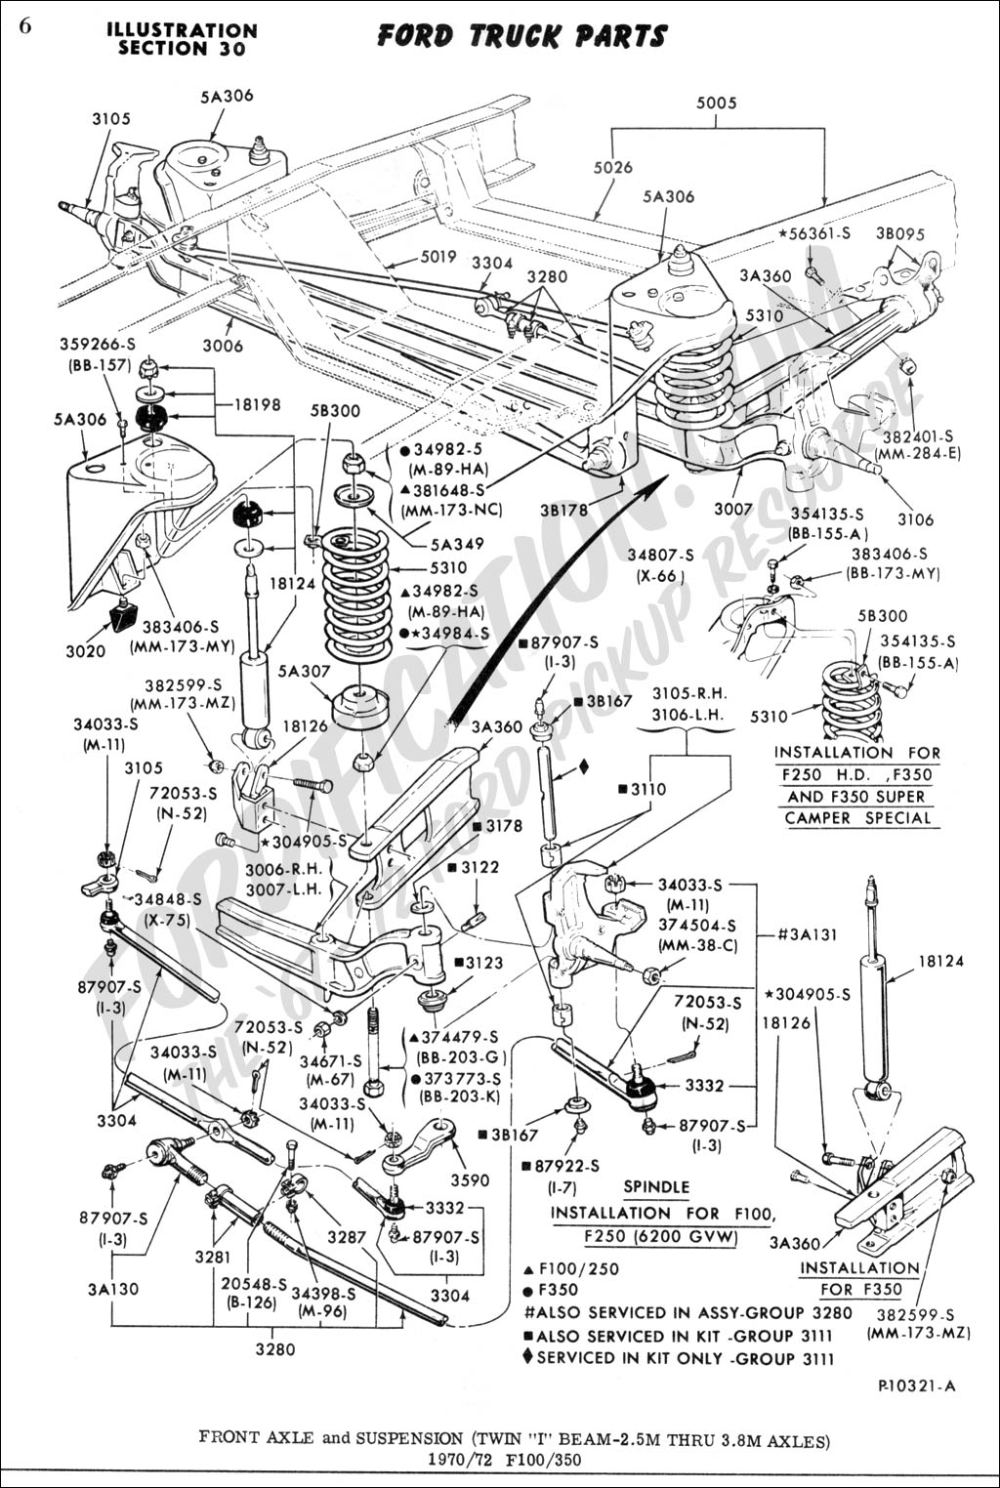 medium resolution of 2003 f350 front axle diagram simple wiring schema 2008 ford explorer front axle schematic ford f 250 axle diagram